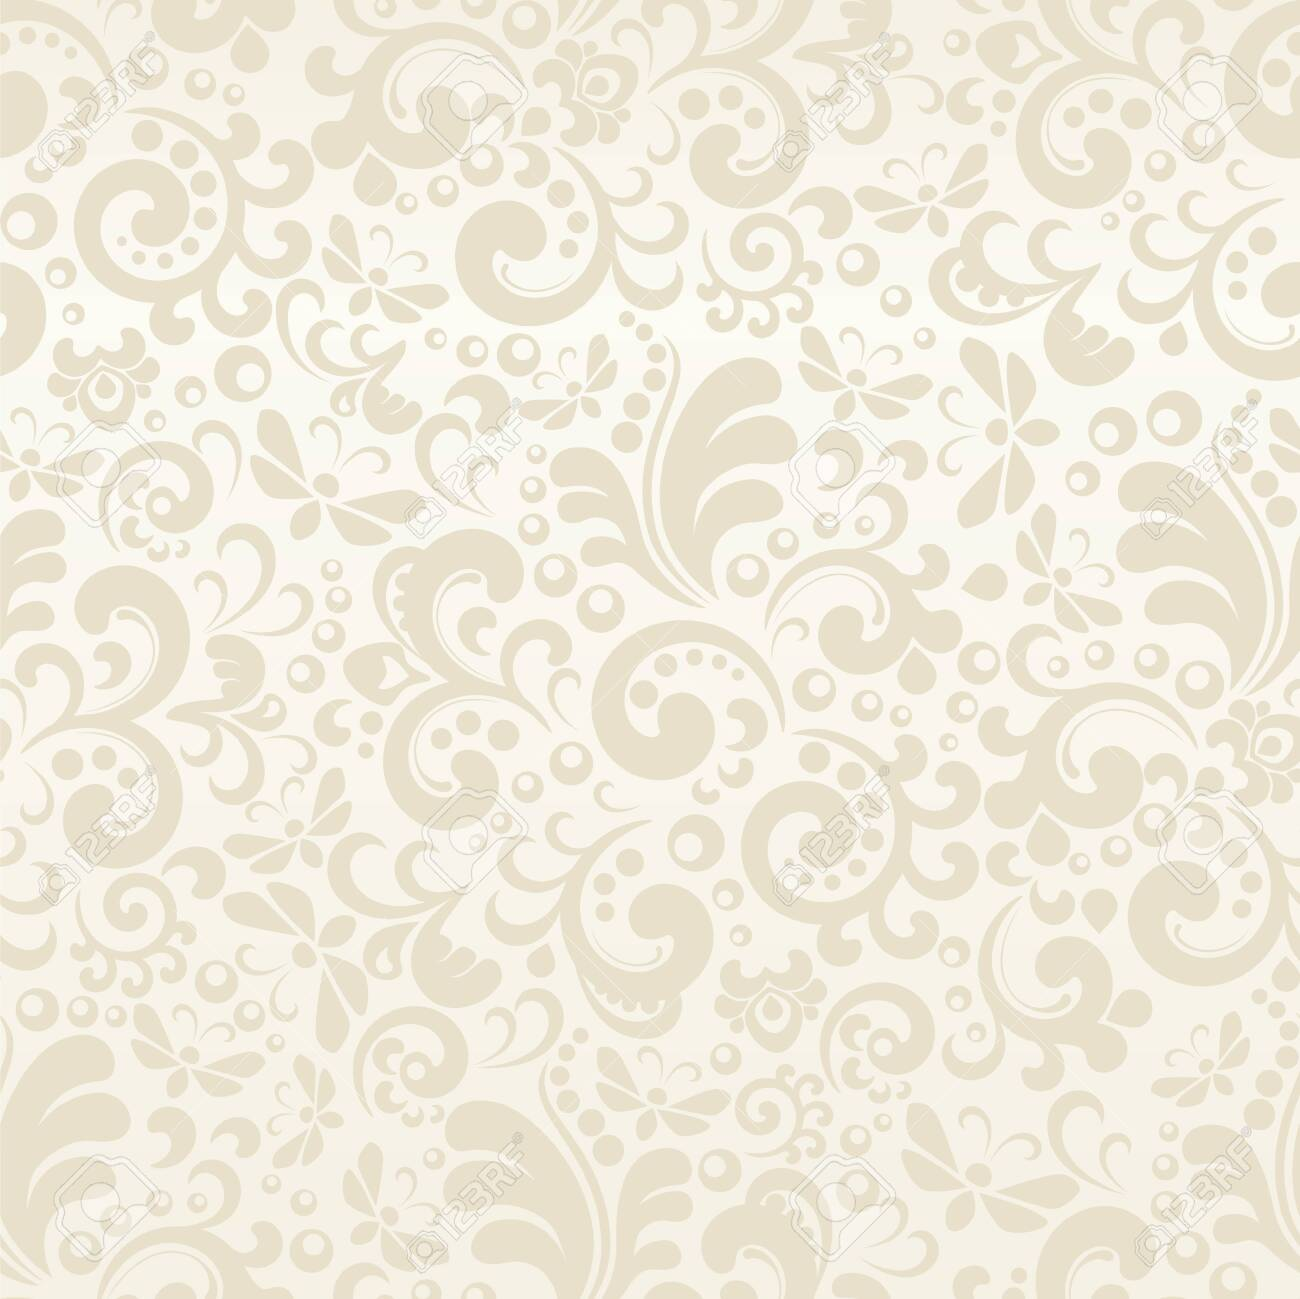 Seamless cream abstract pattern with plant elements - 137353214